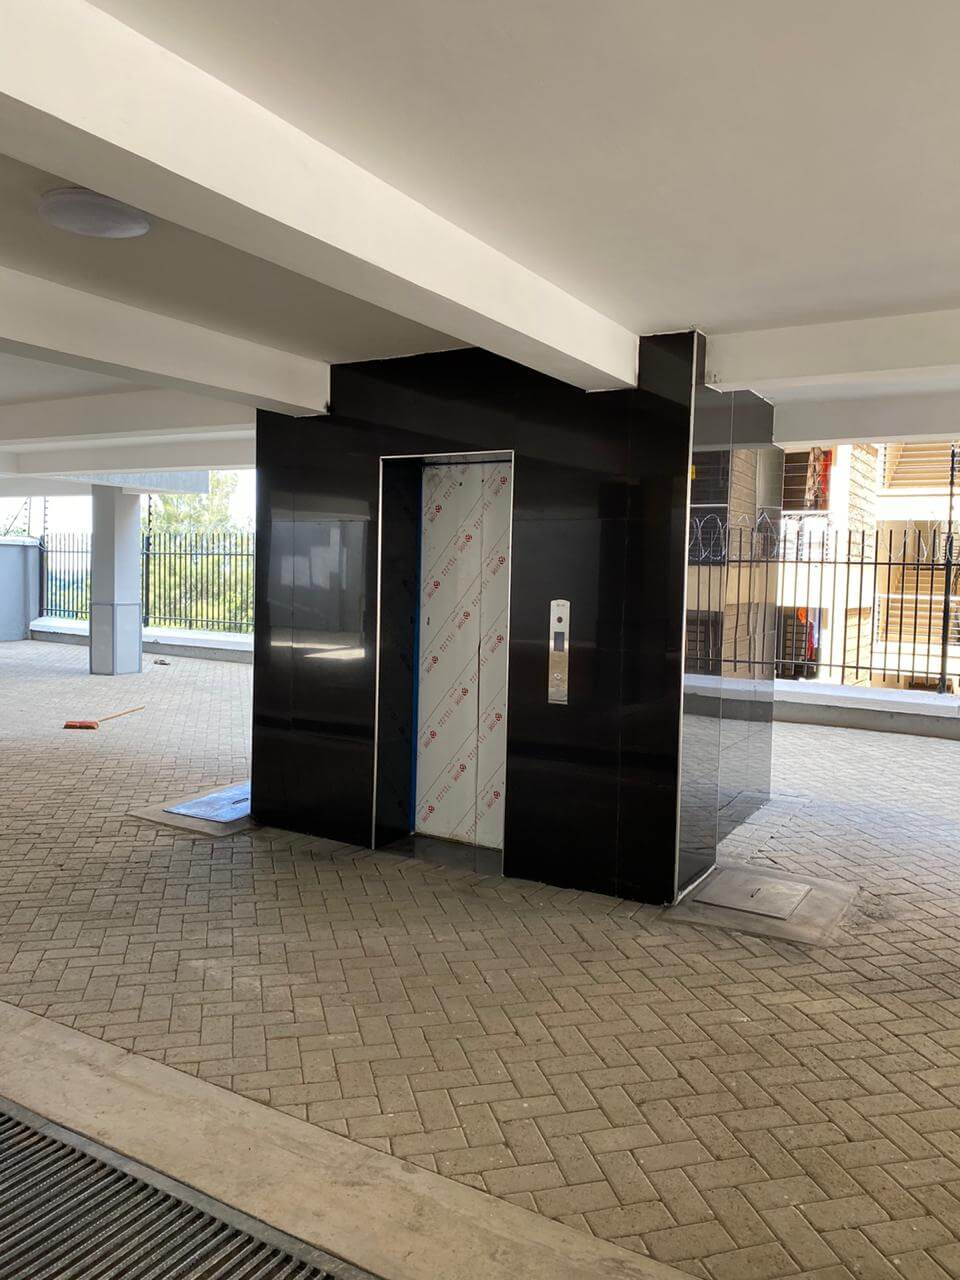 grandville luxury apartments phase 2 elevator lobby on the parking area